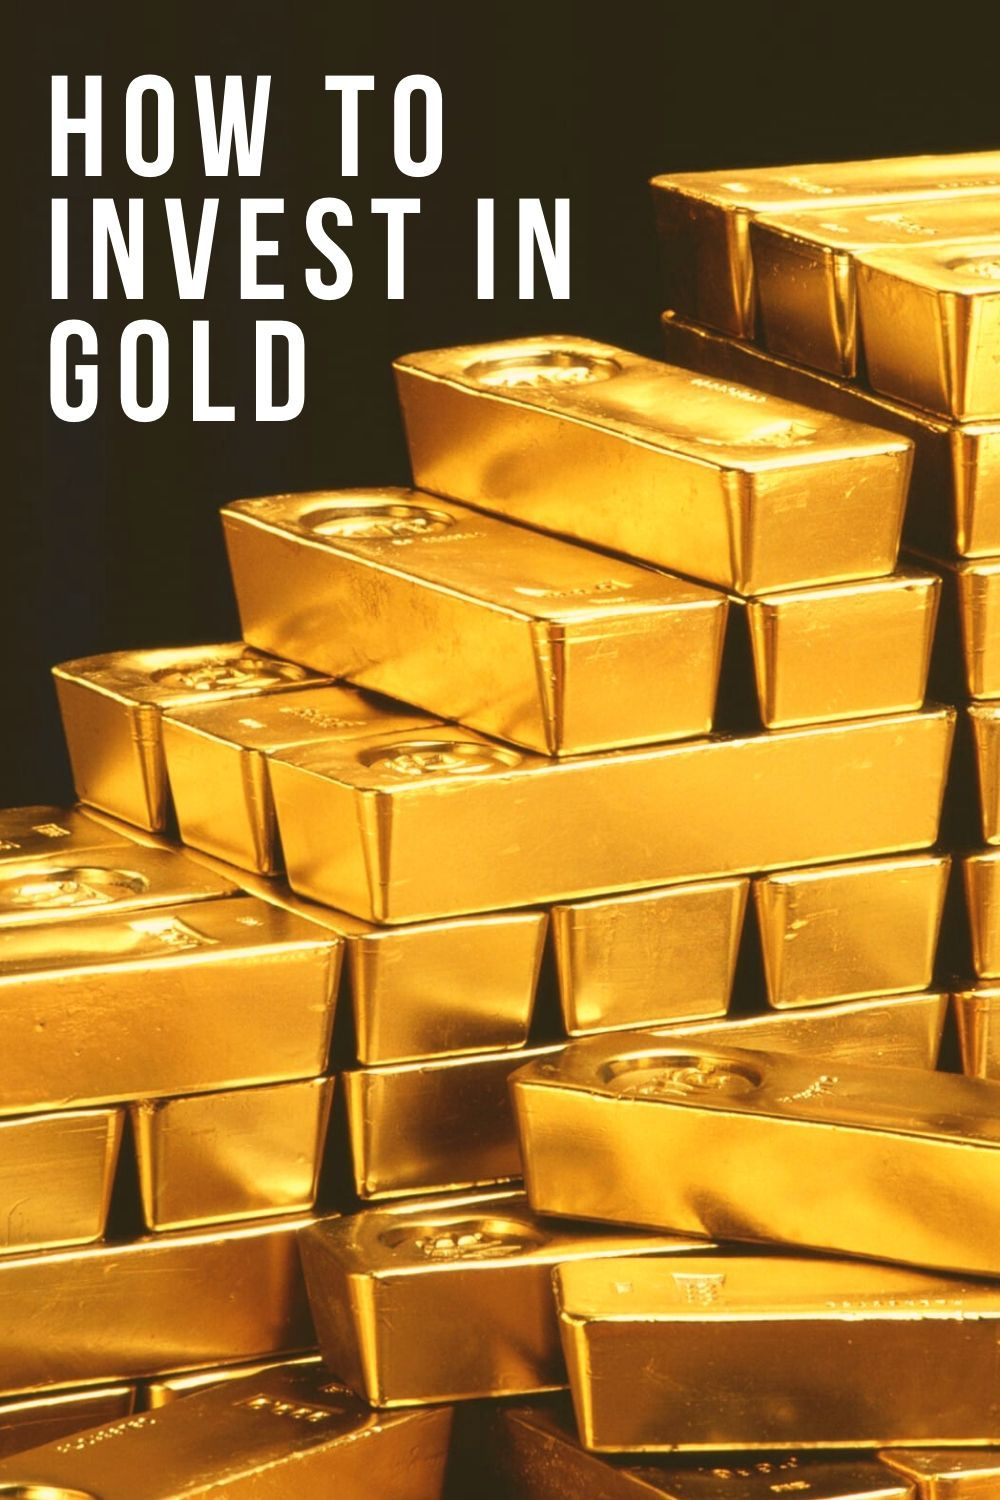 How To Invest In Gold 2020? in 2020 Gold investments